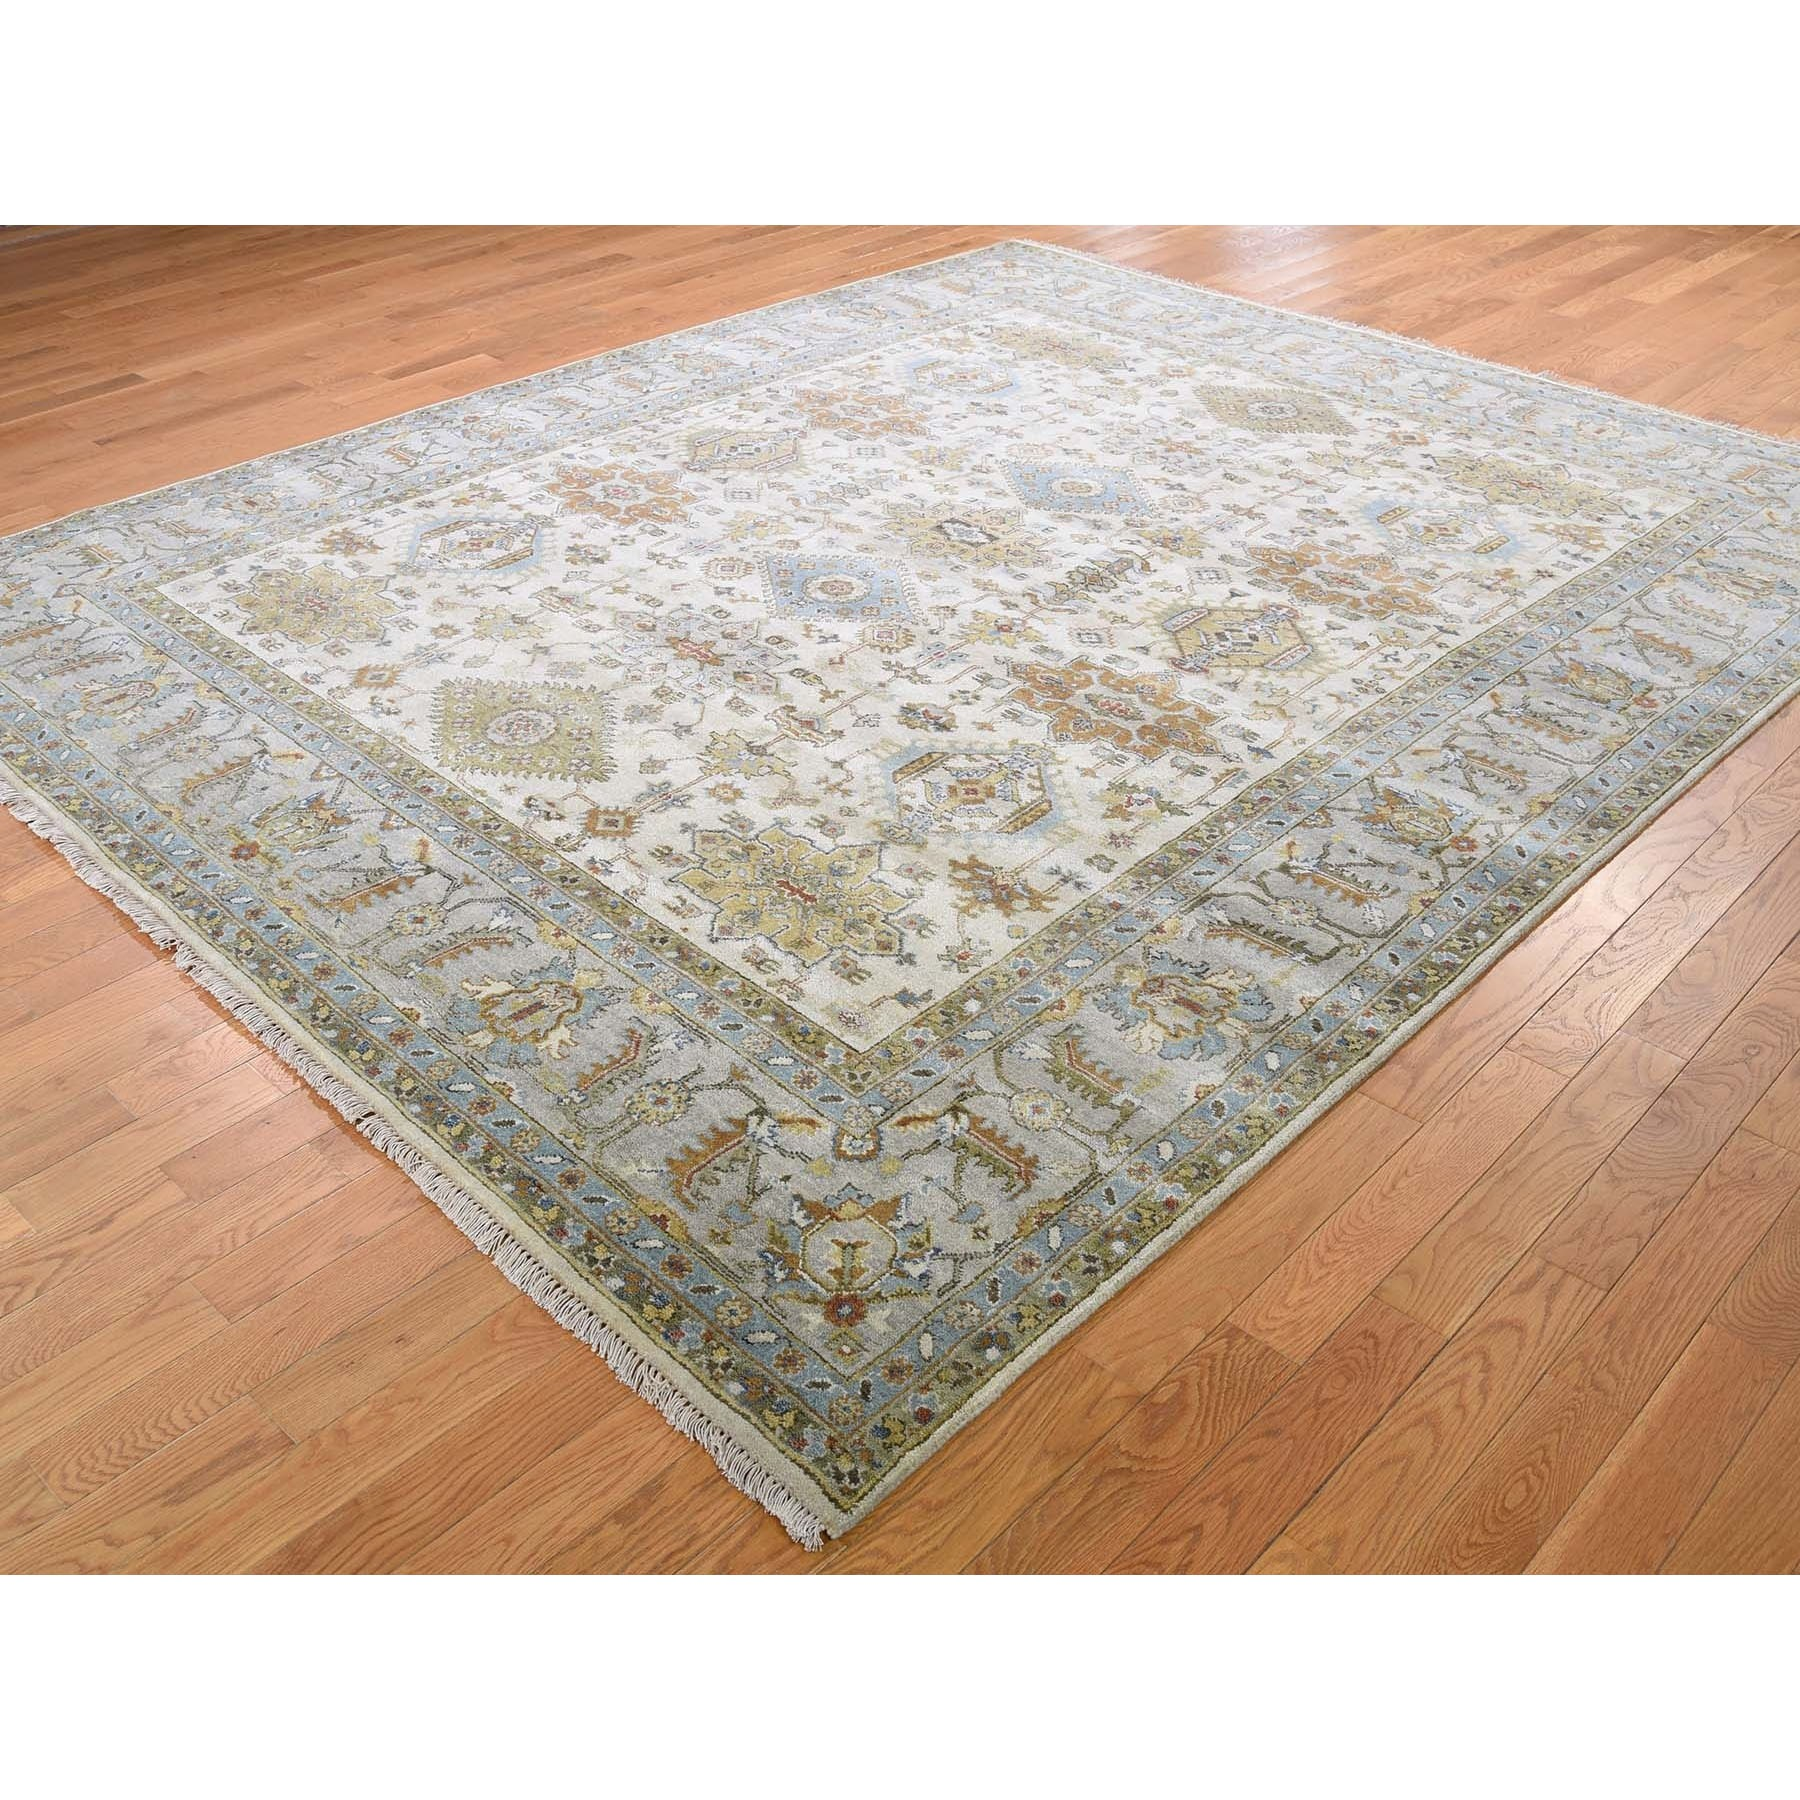 "8'1""x10' Ivory Karajeh Design Pure Wool Hand Knotted Oriental Rug"